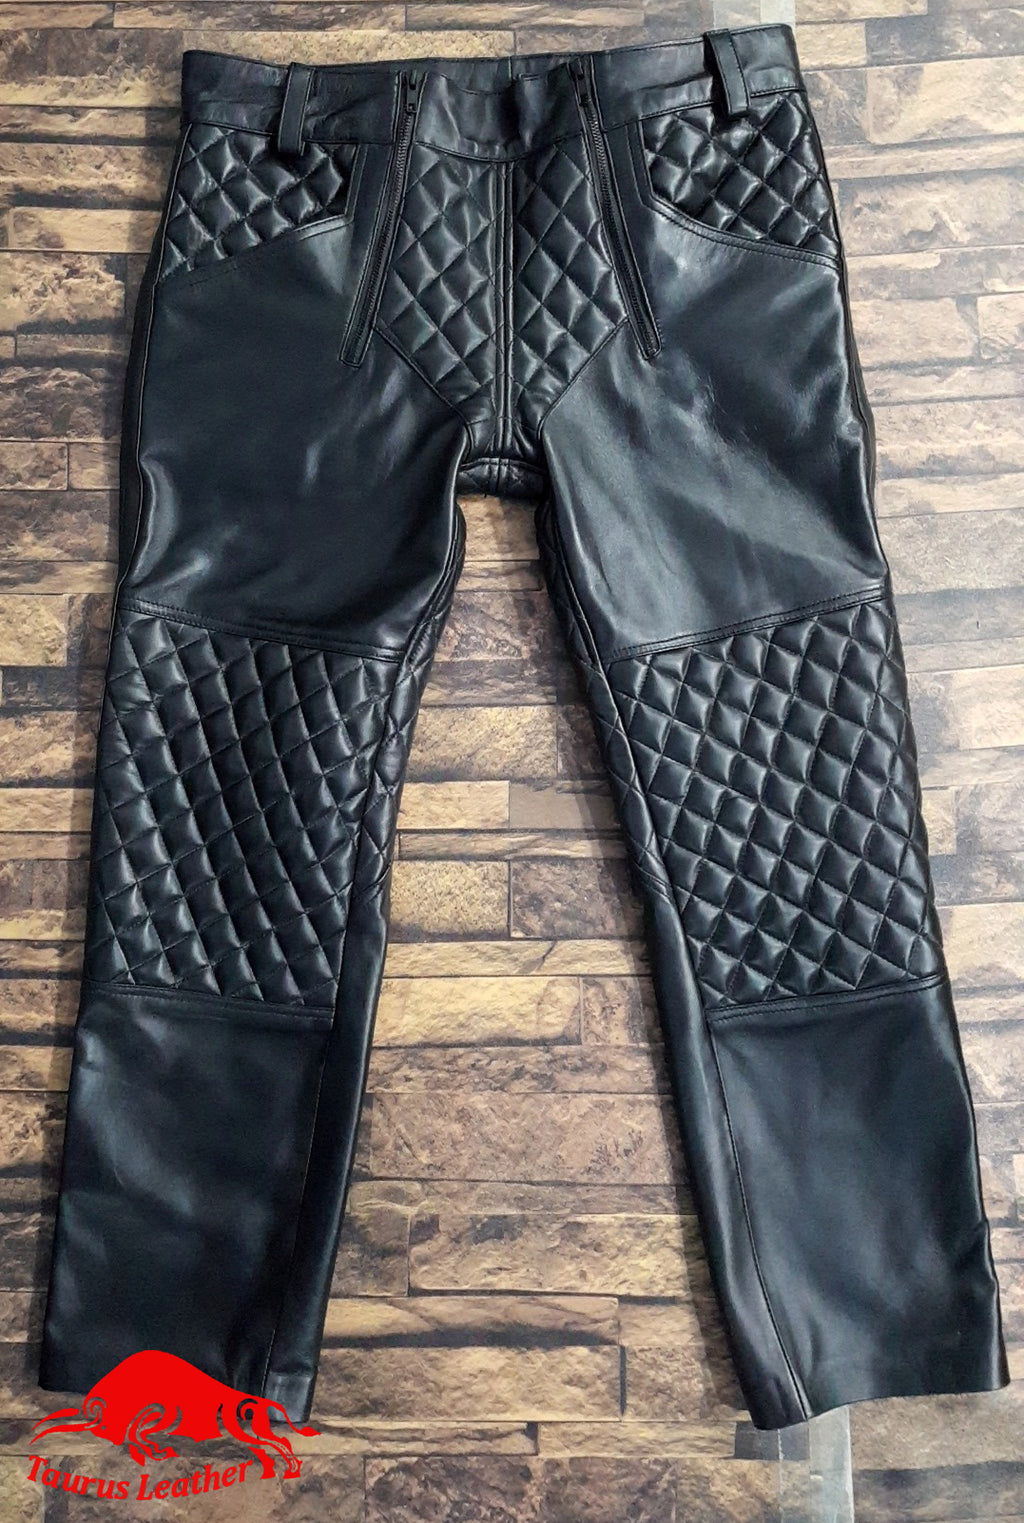 TAURUS LEATHER Biker Style Quilted Pant Sheep Leather